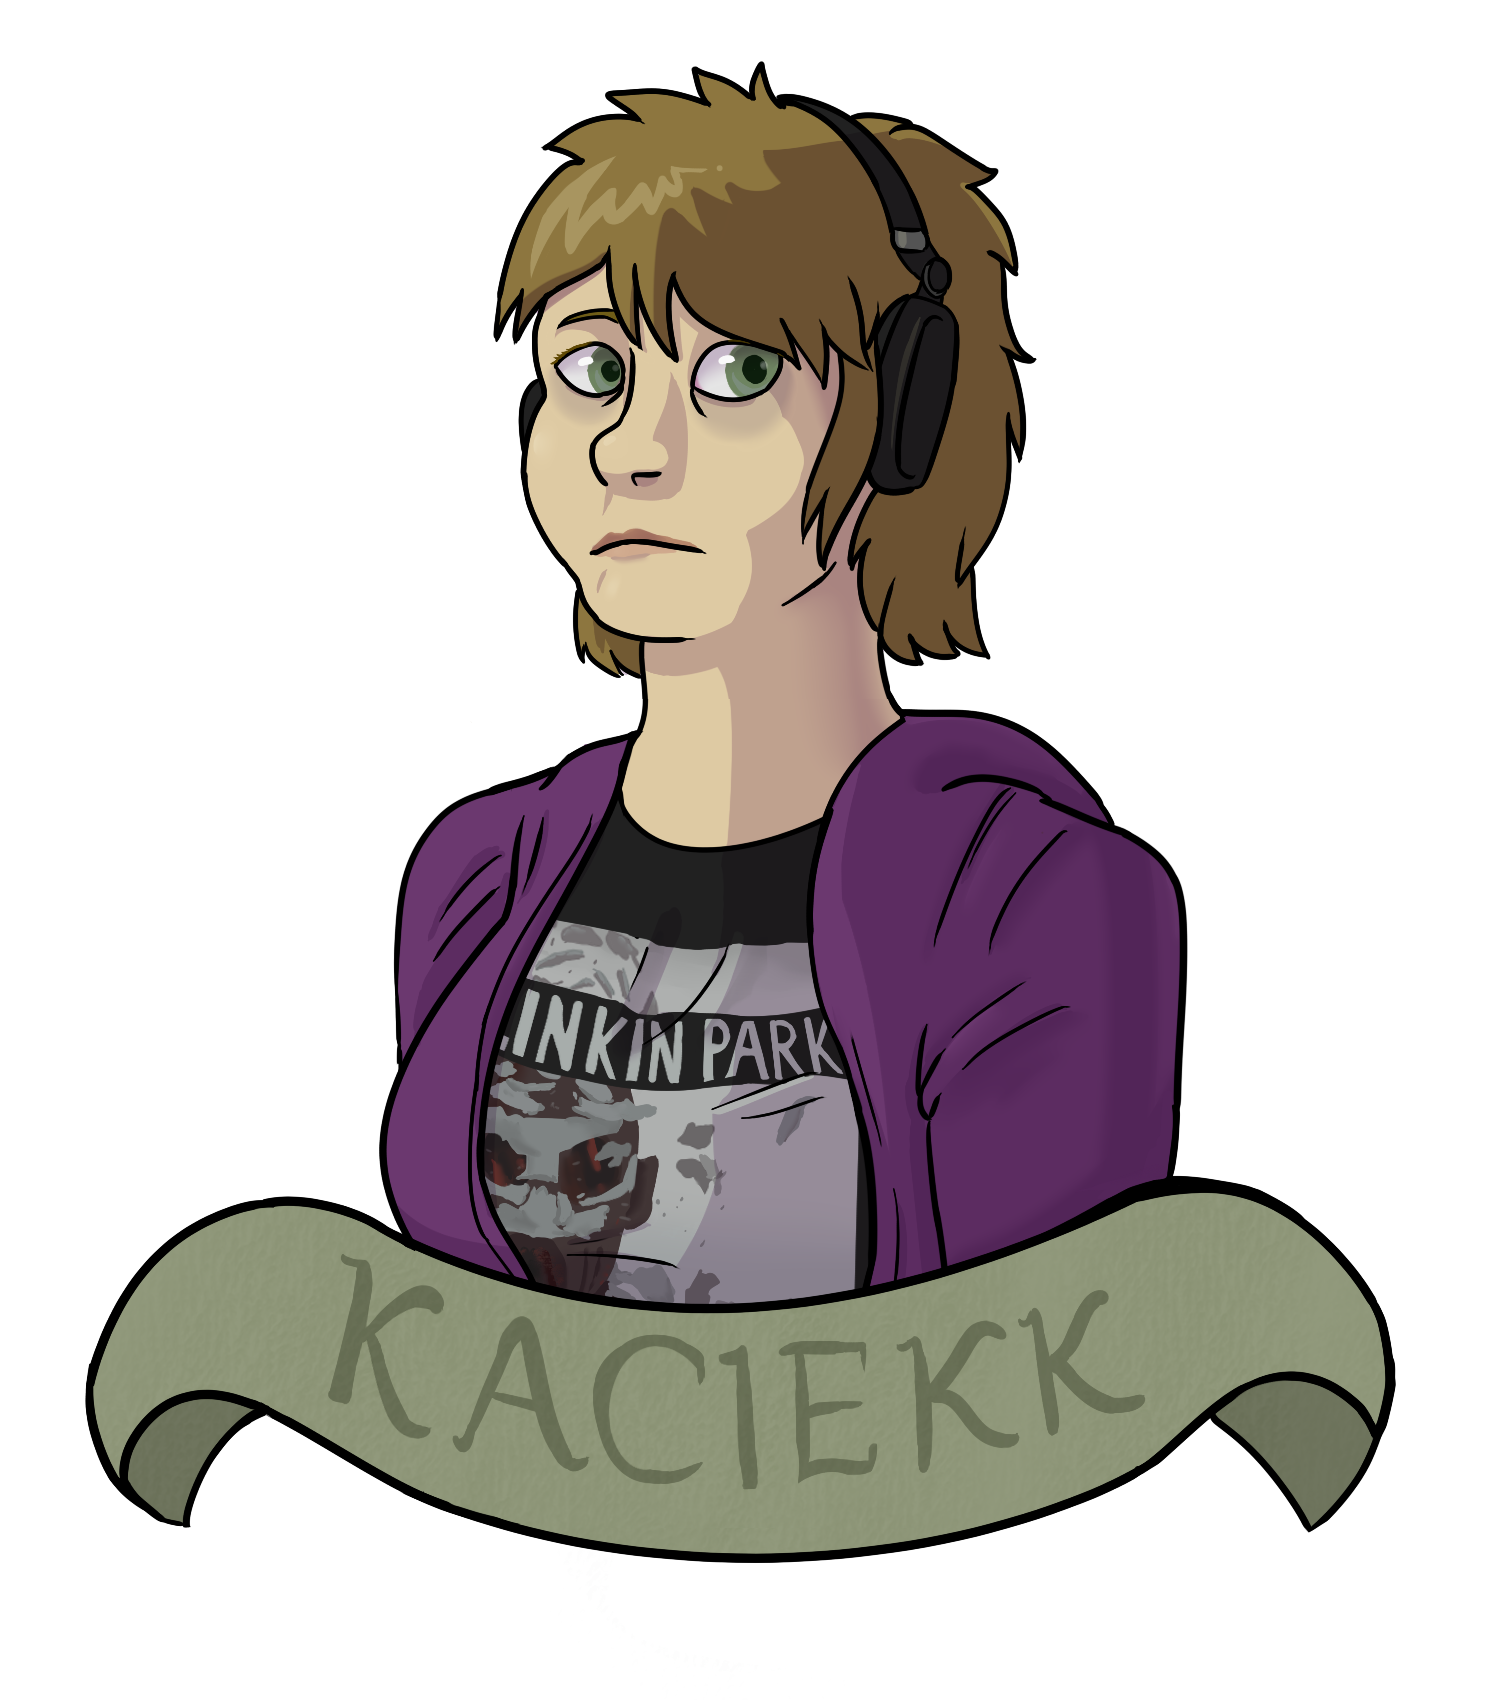 kaciekk's Profile Picture